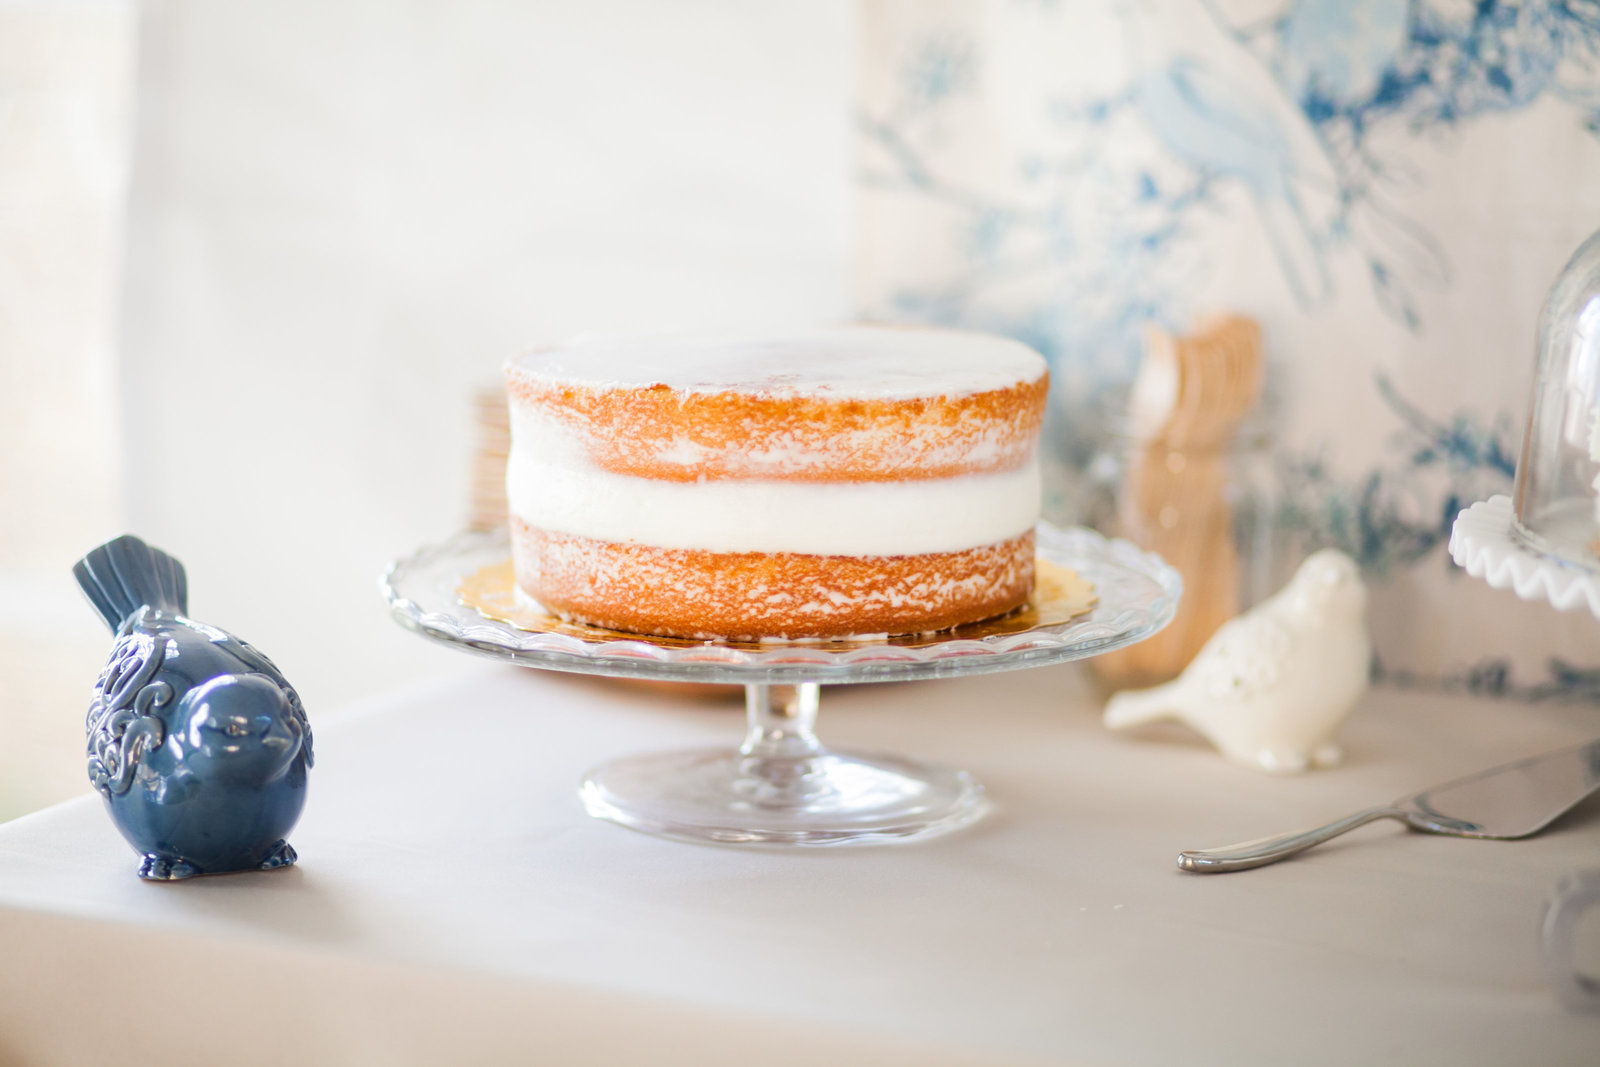 Picture of naked wedding cake on crystal cake stand | Susie Moreno Photography